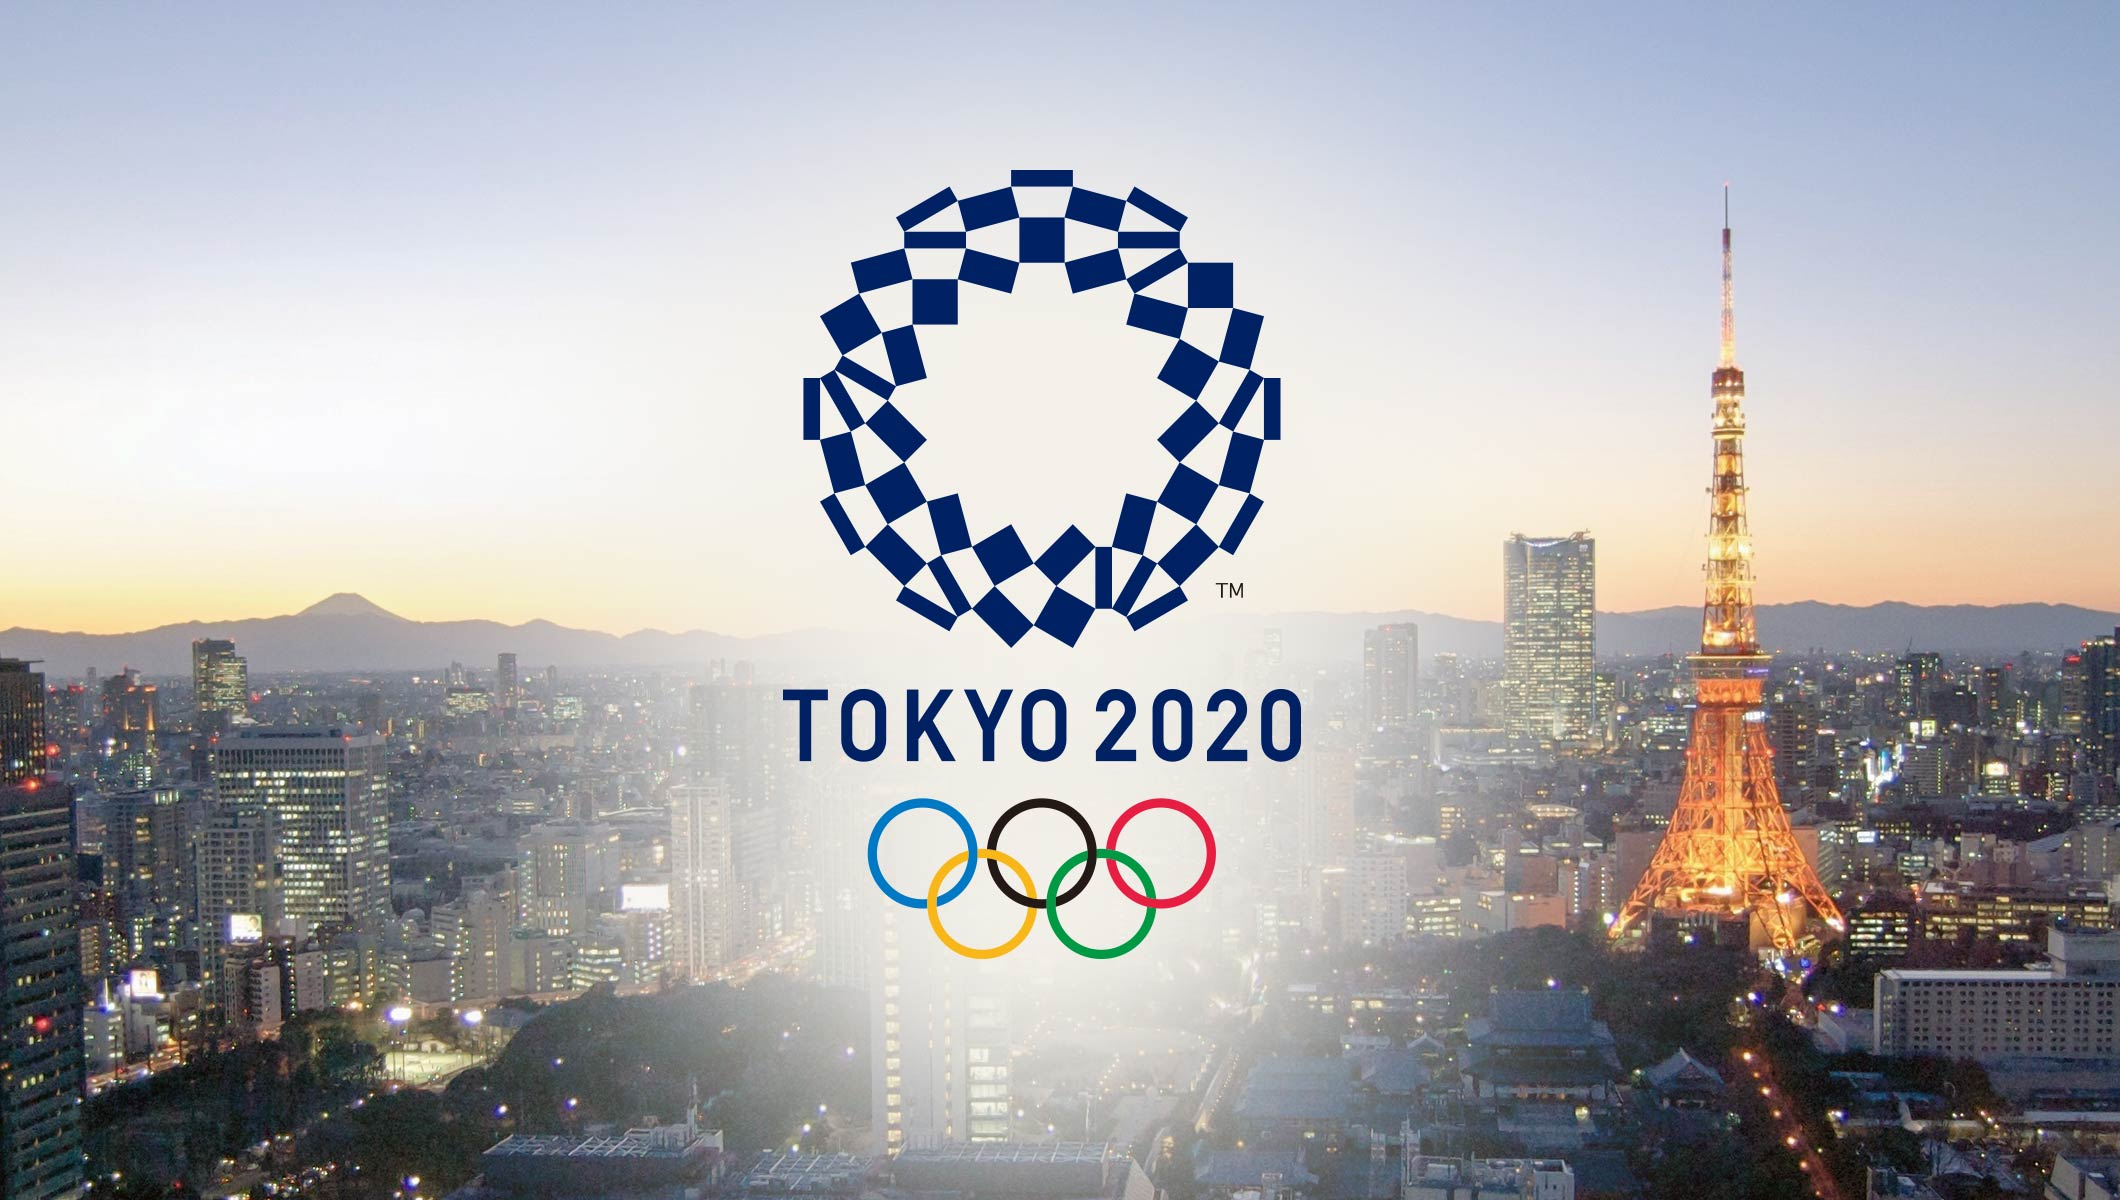 USA predicted to dominate Tokyo Olympics 2020